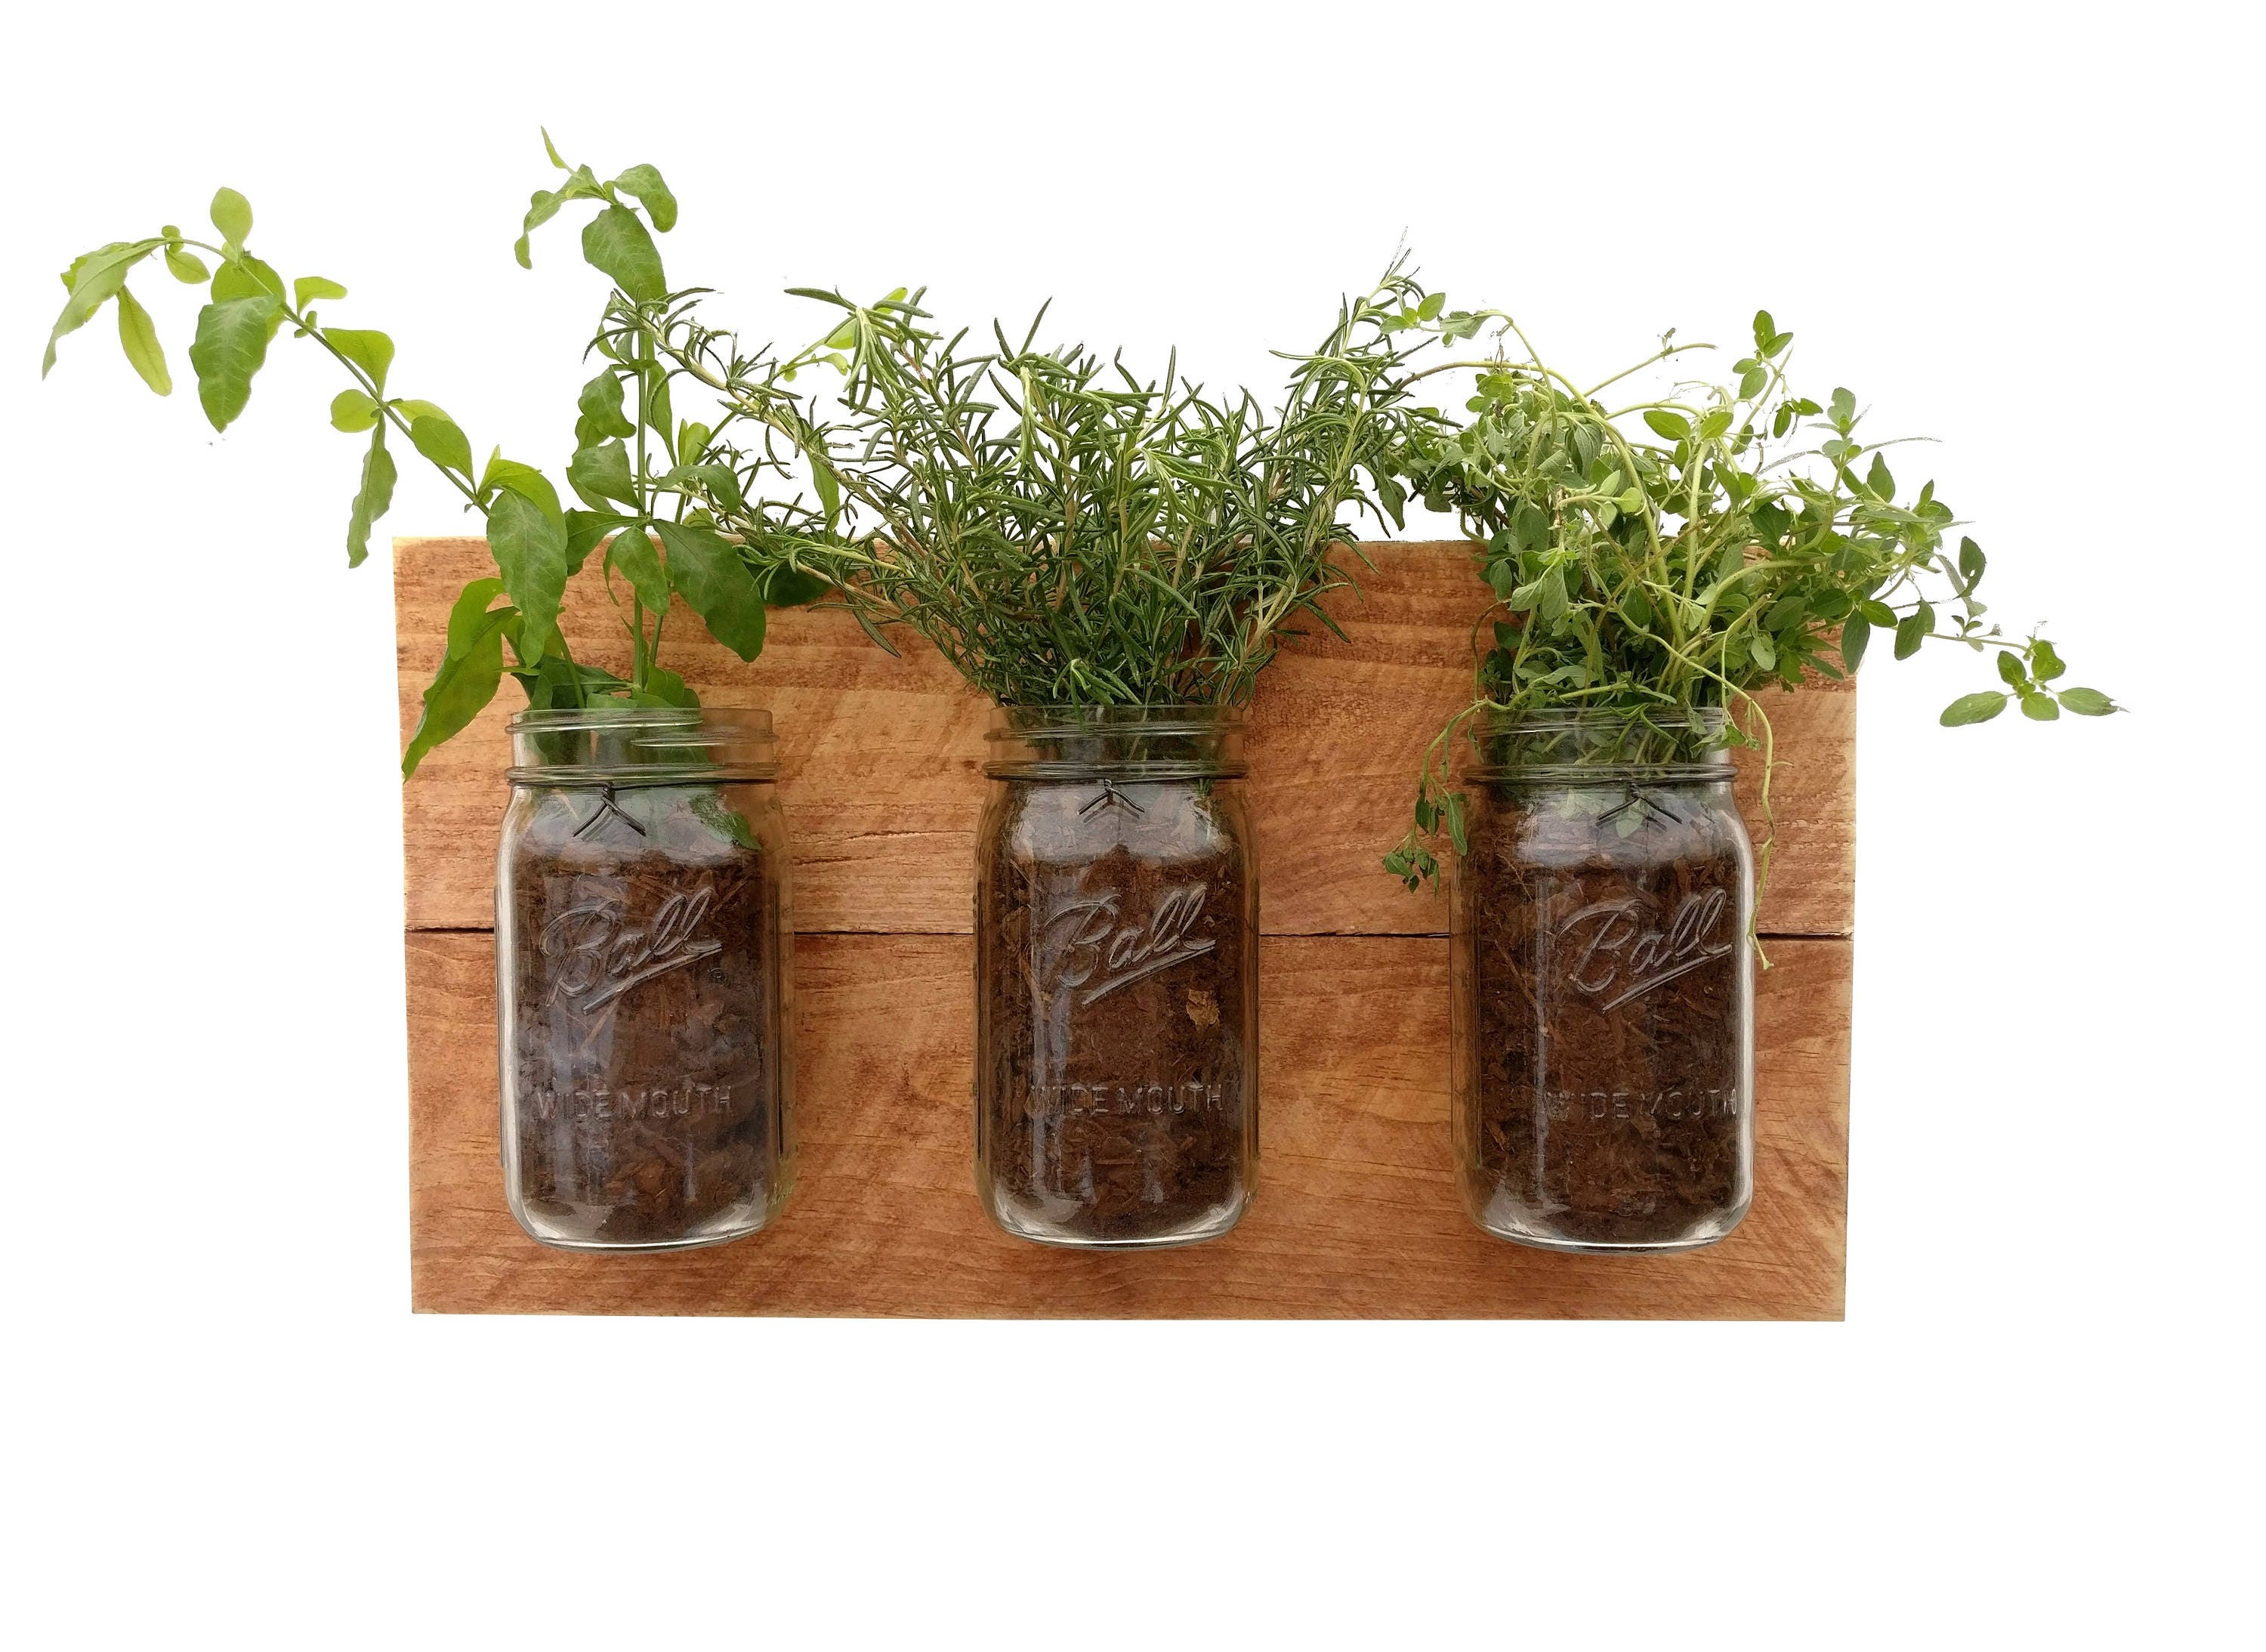 Herb Planter Reclaimed Wood Herb Planter Hanging Planter Indoor Herb